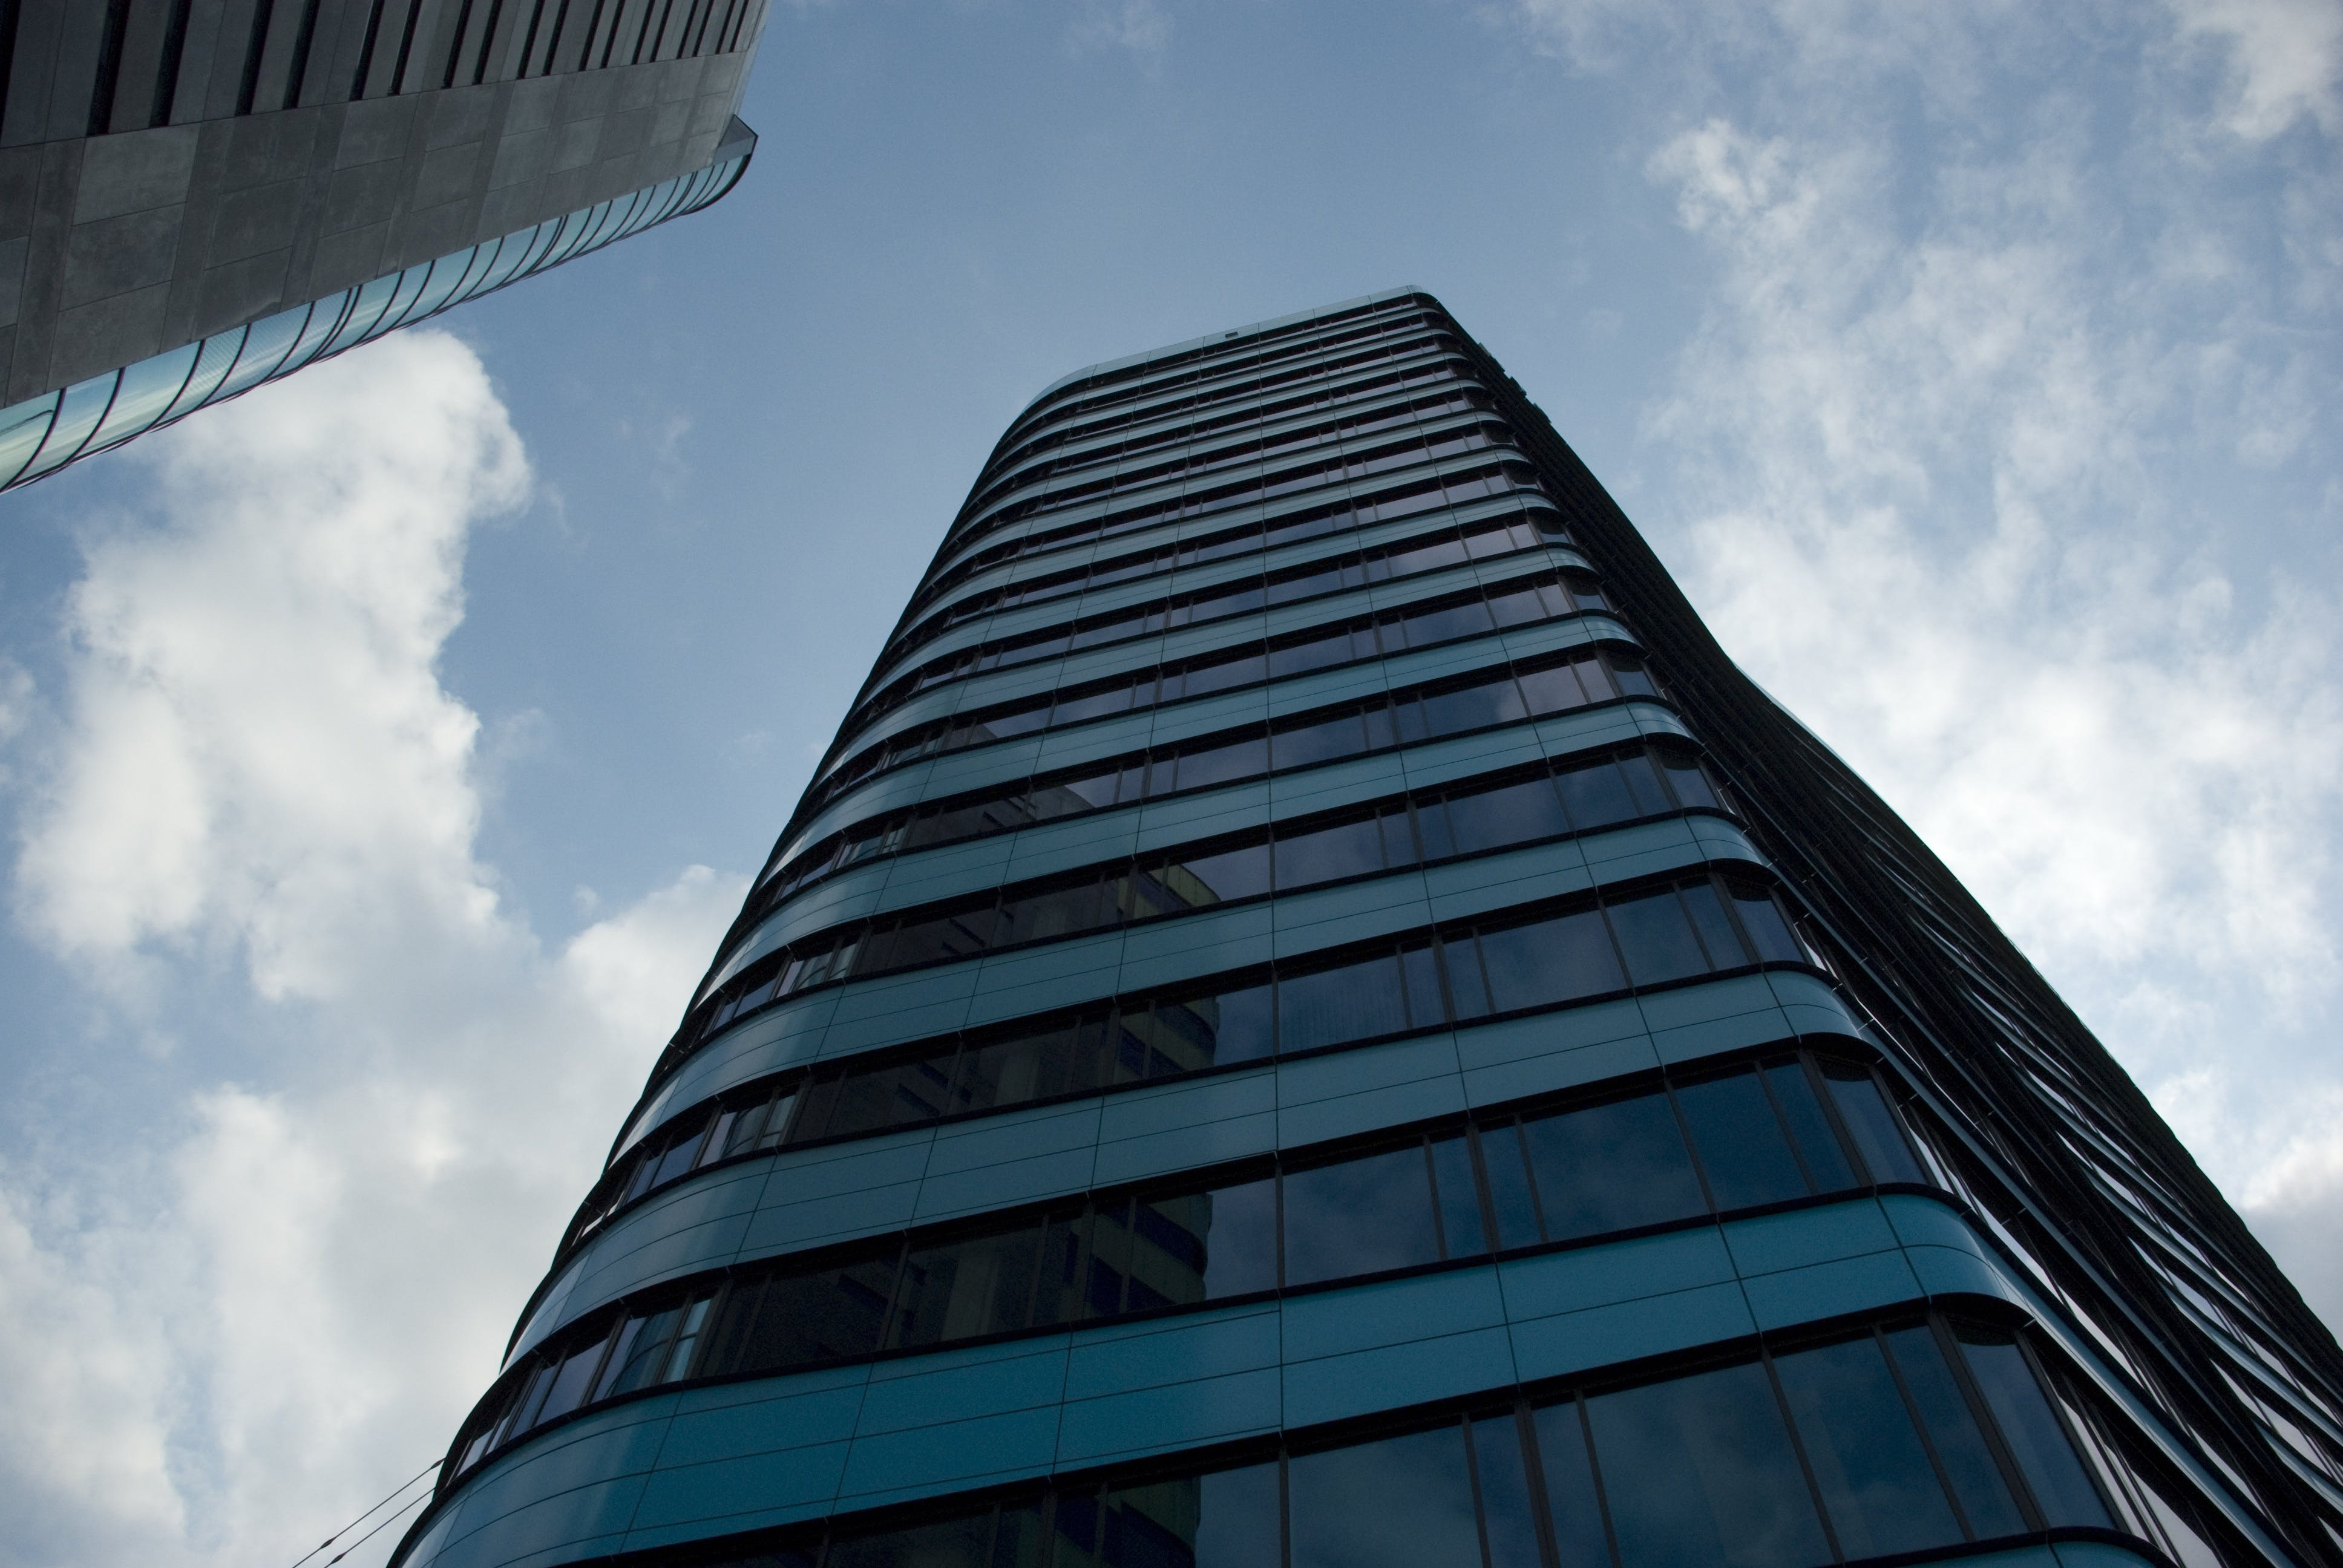 View of High Rise Building